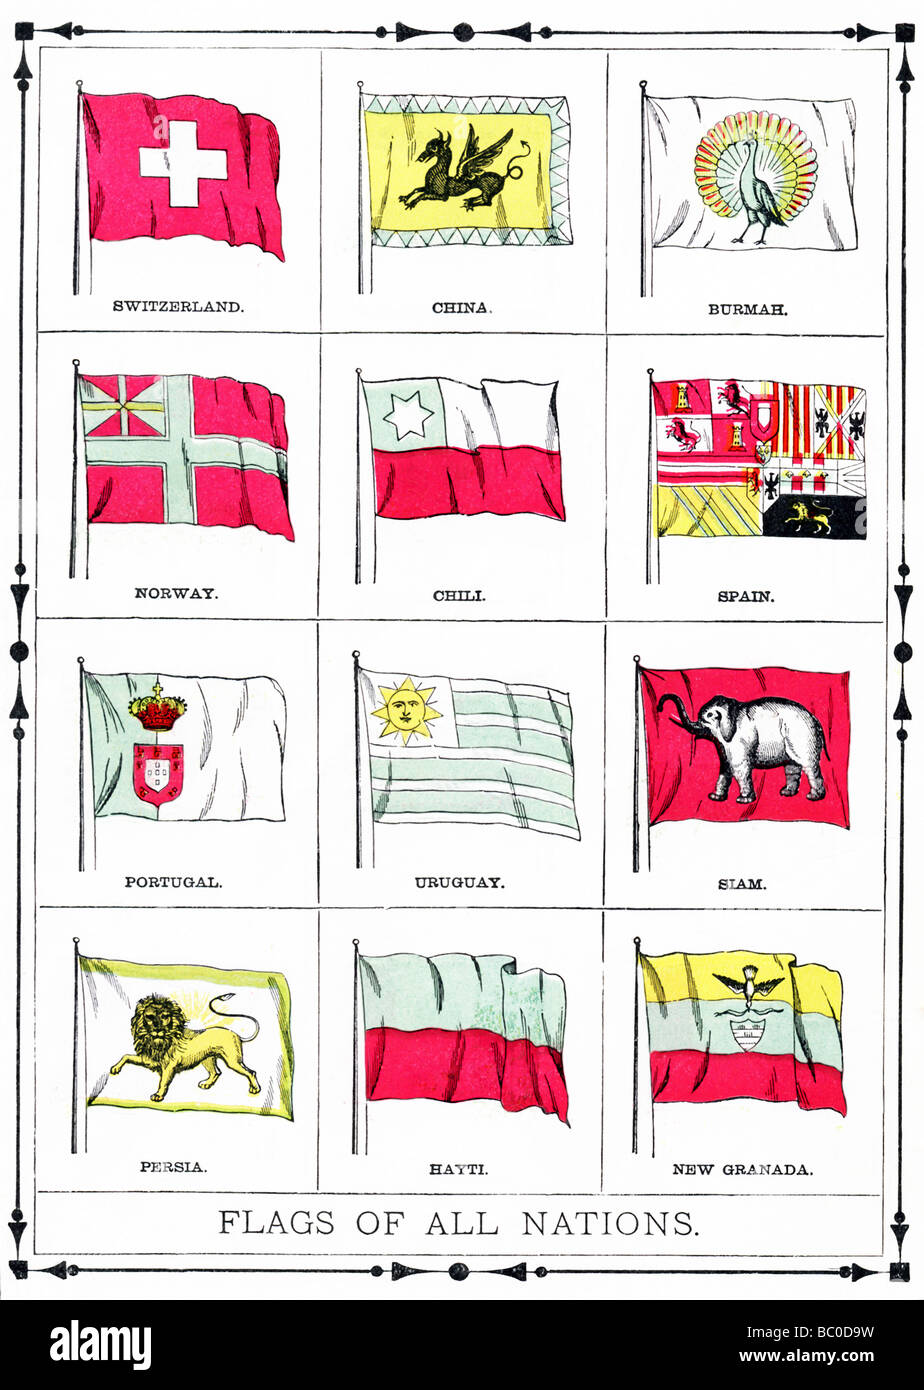 The flags shown in this illustration were current in 1896. They include Swtizerland, China, Burma, Norway, Chile, - Stock Image